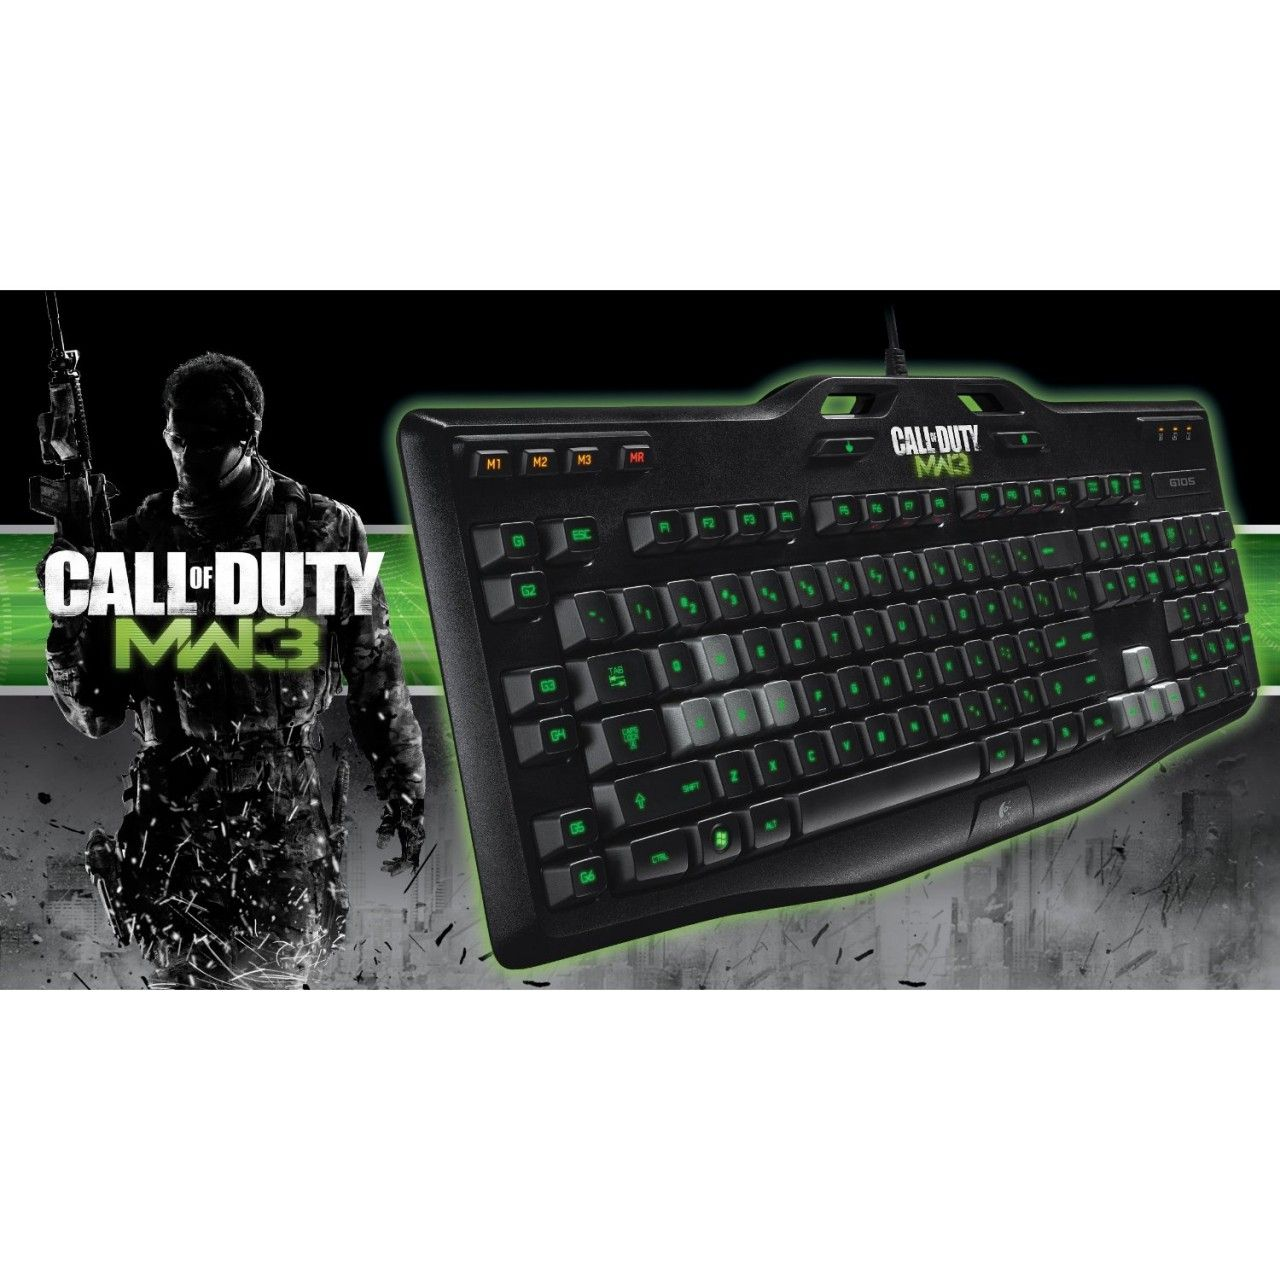 Logitech Gaming Keyboard G105: Made for Call of Duty